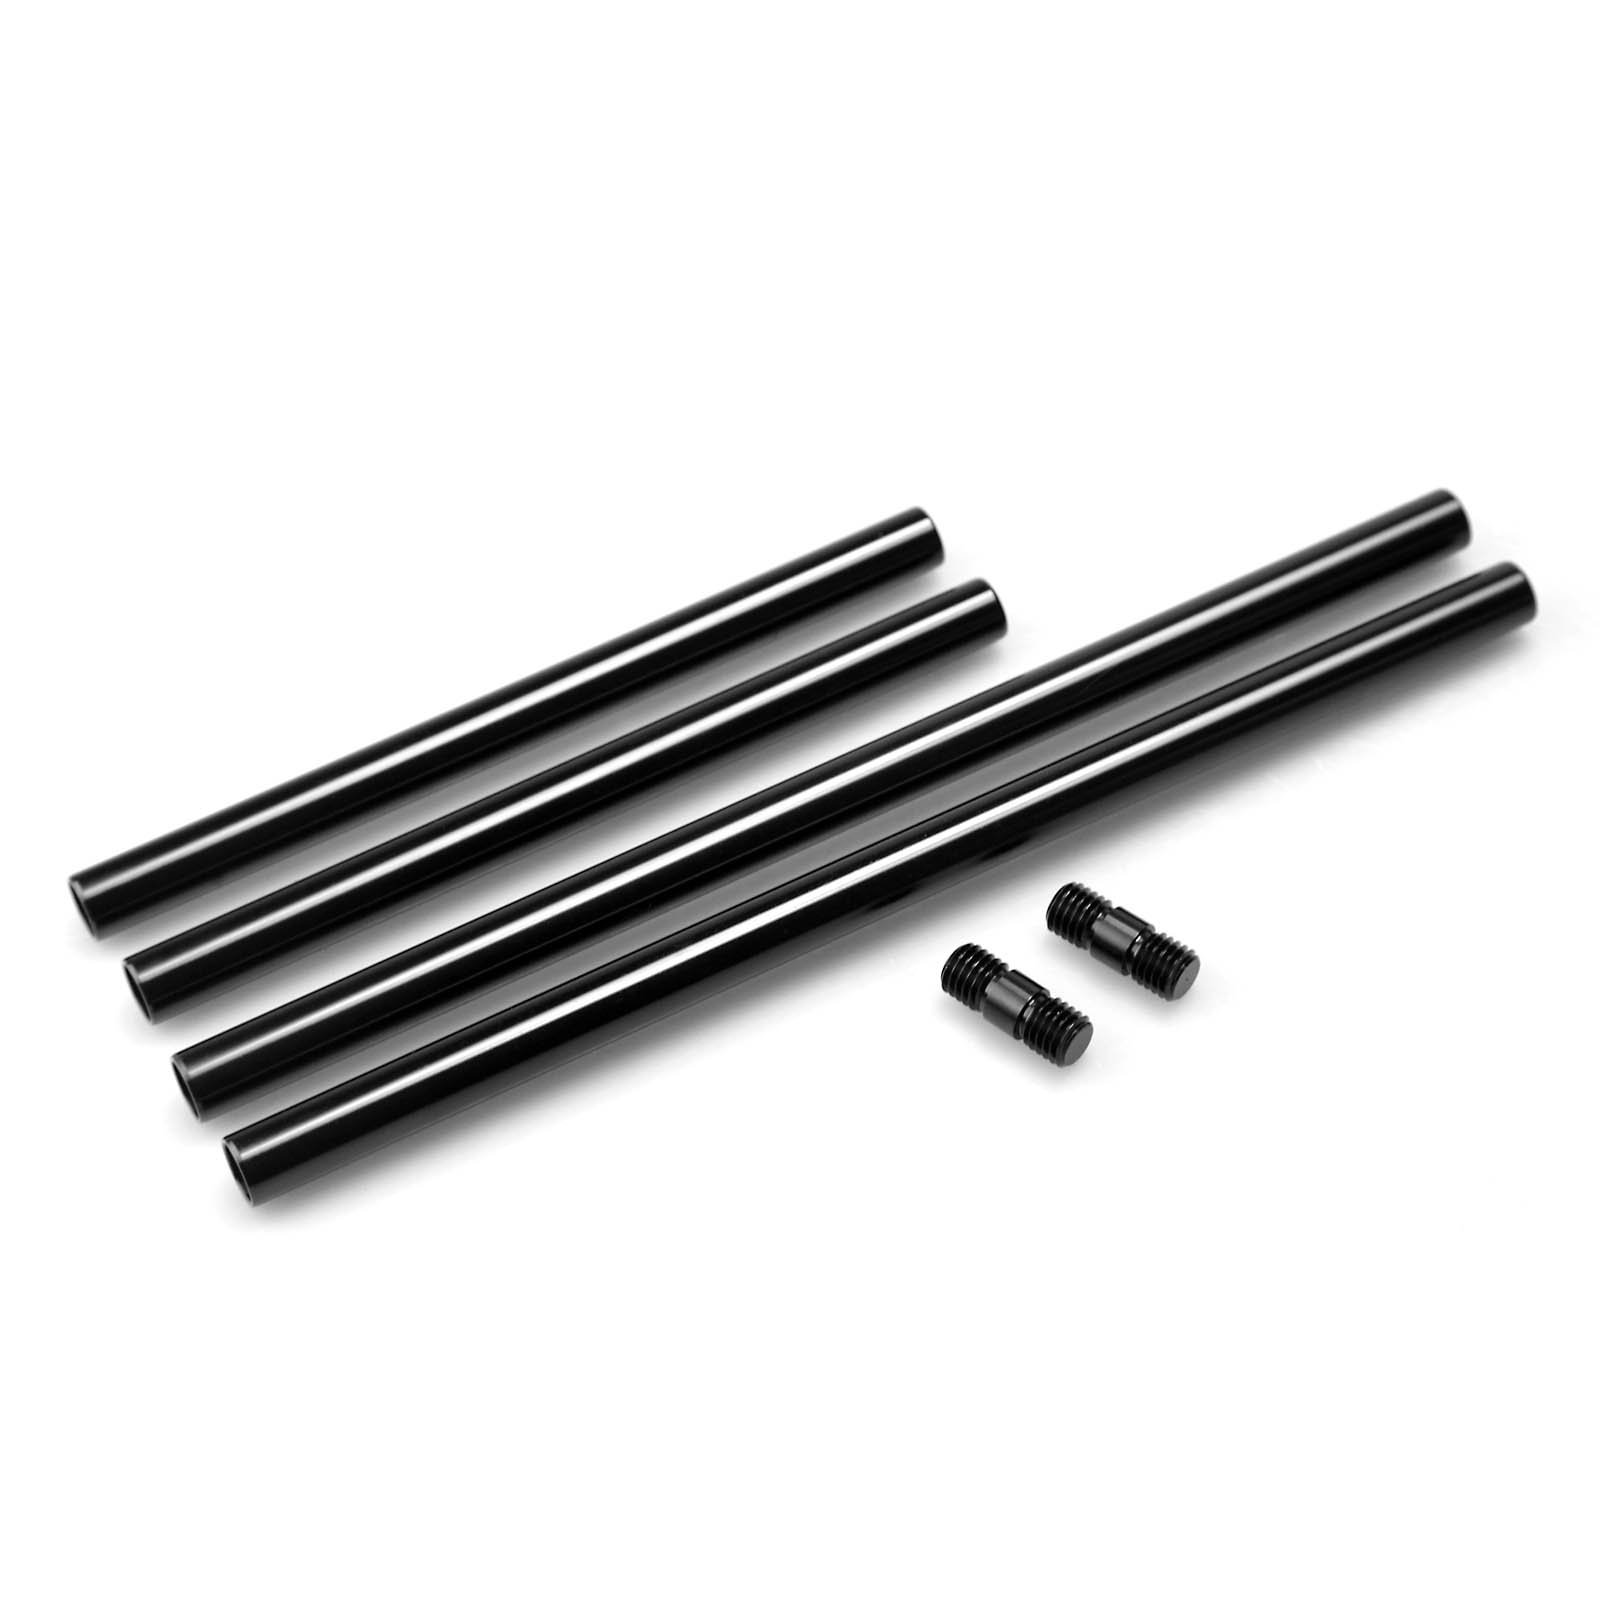 Smallrig 1659 15mm Rods Pack With M12 Thread Rod Cap Conn...